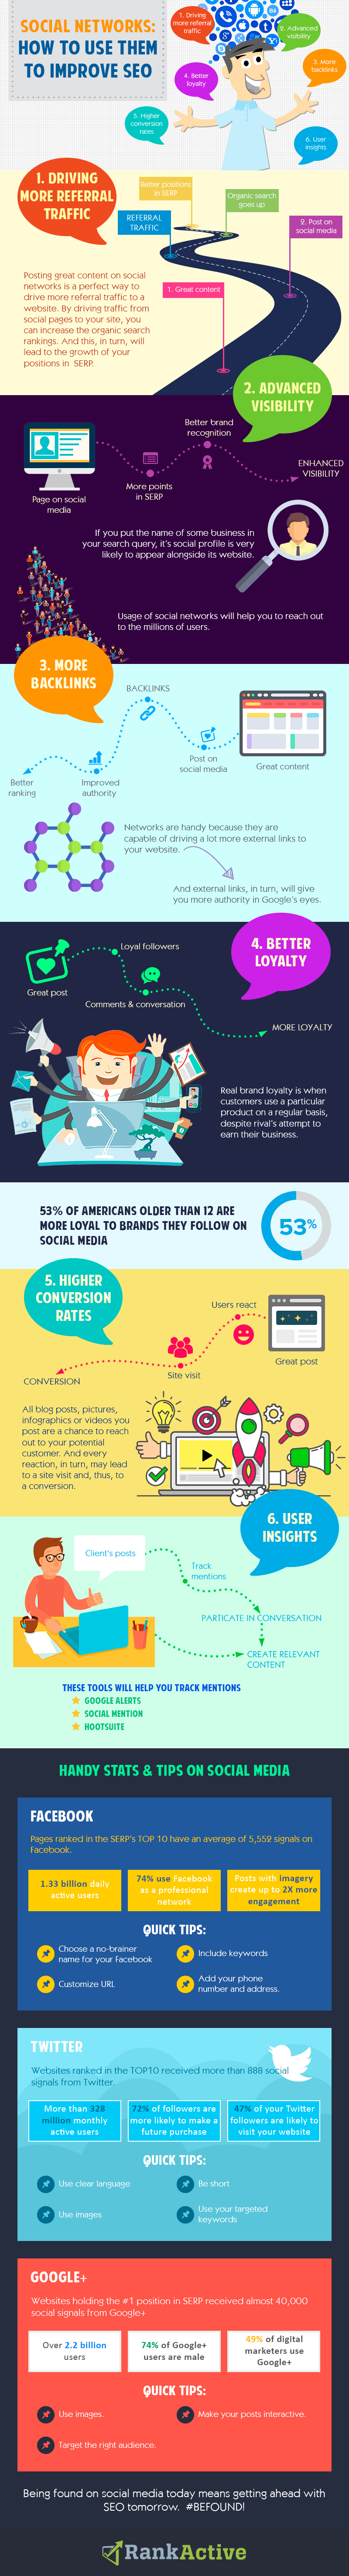 Infographic looks at links between social media activity and SEO